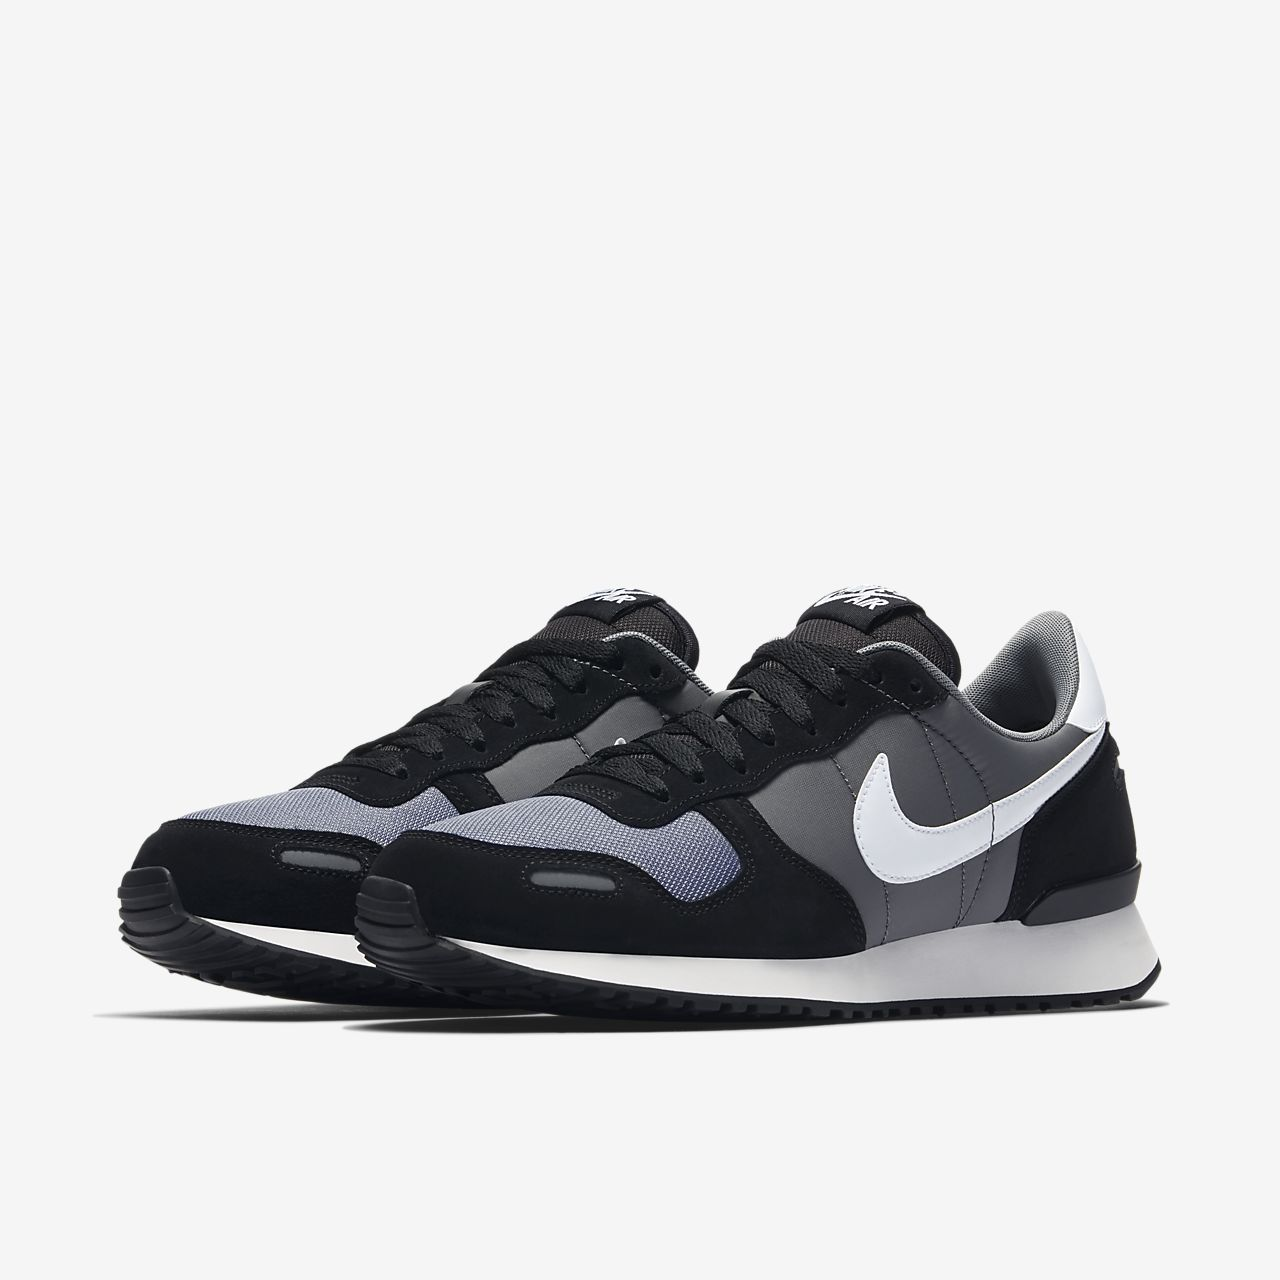 Basket Nike Air Vortex - 903896-001 on2TJFY